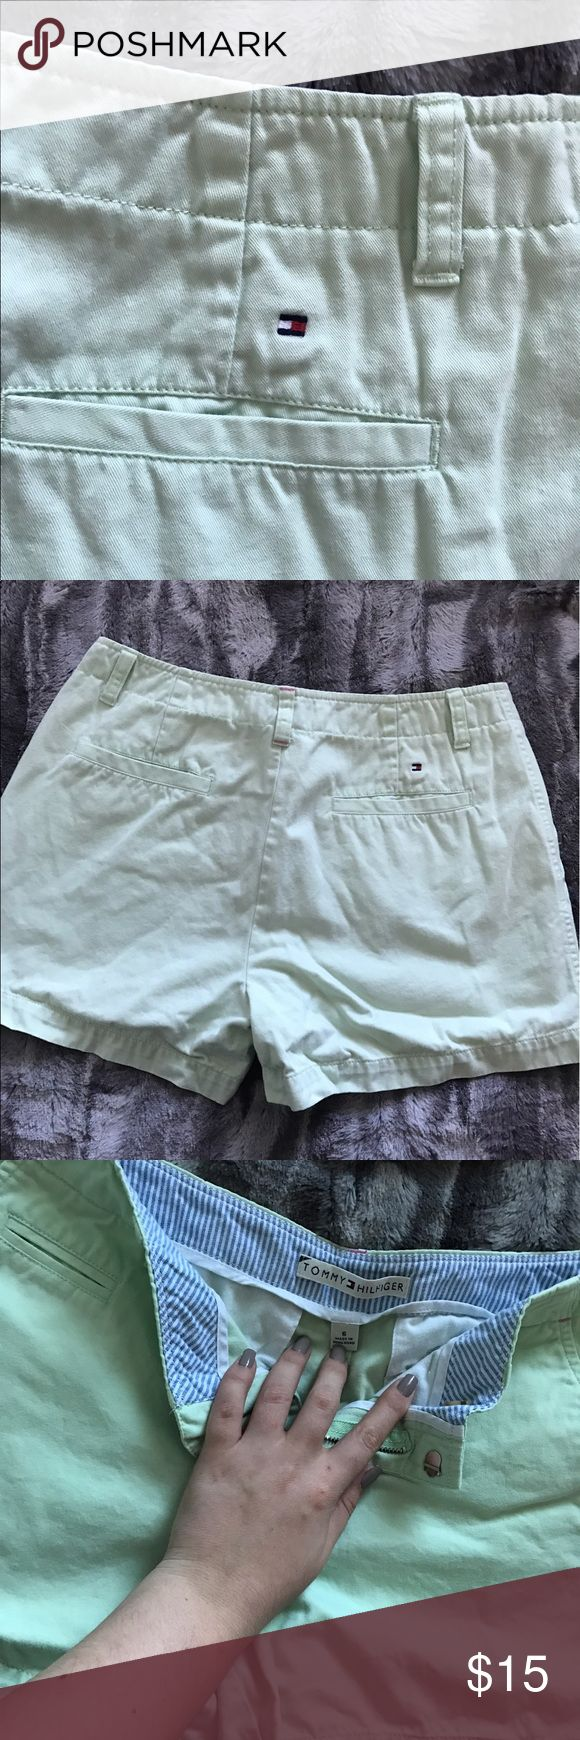 Tommy Chino Shorts Lime or pastel green chino shorts Tommy Hilfiger Shorts